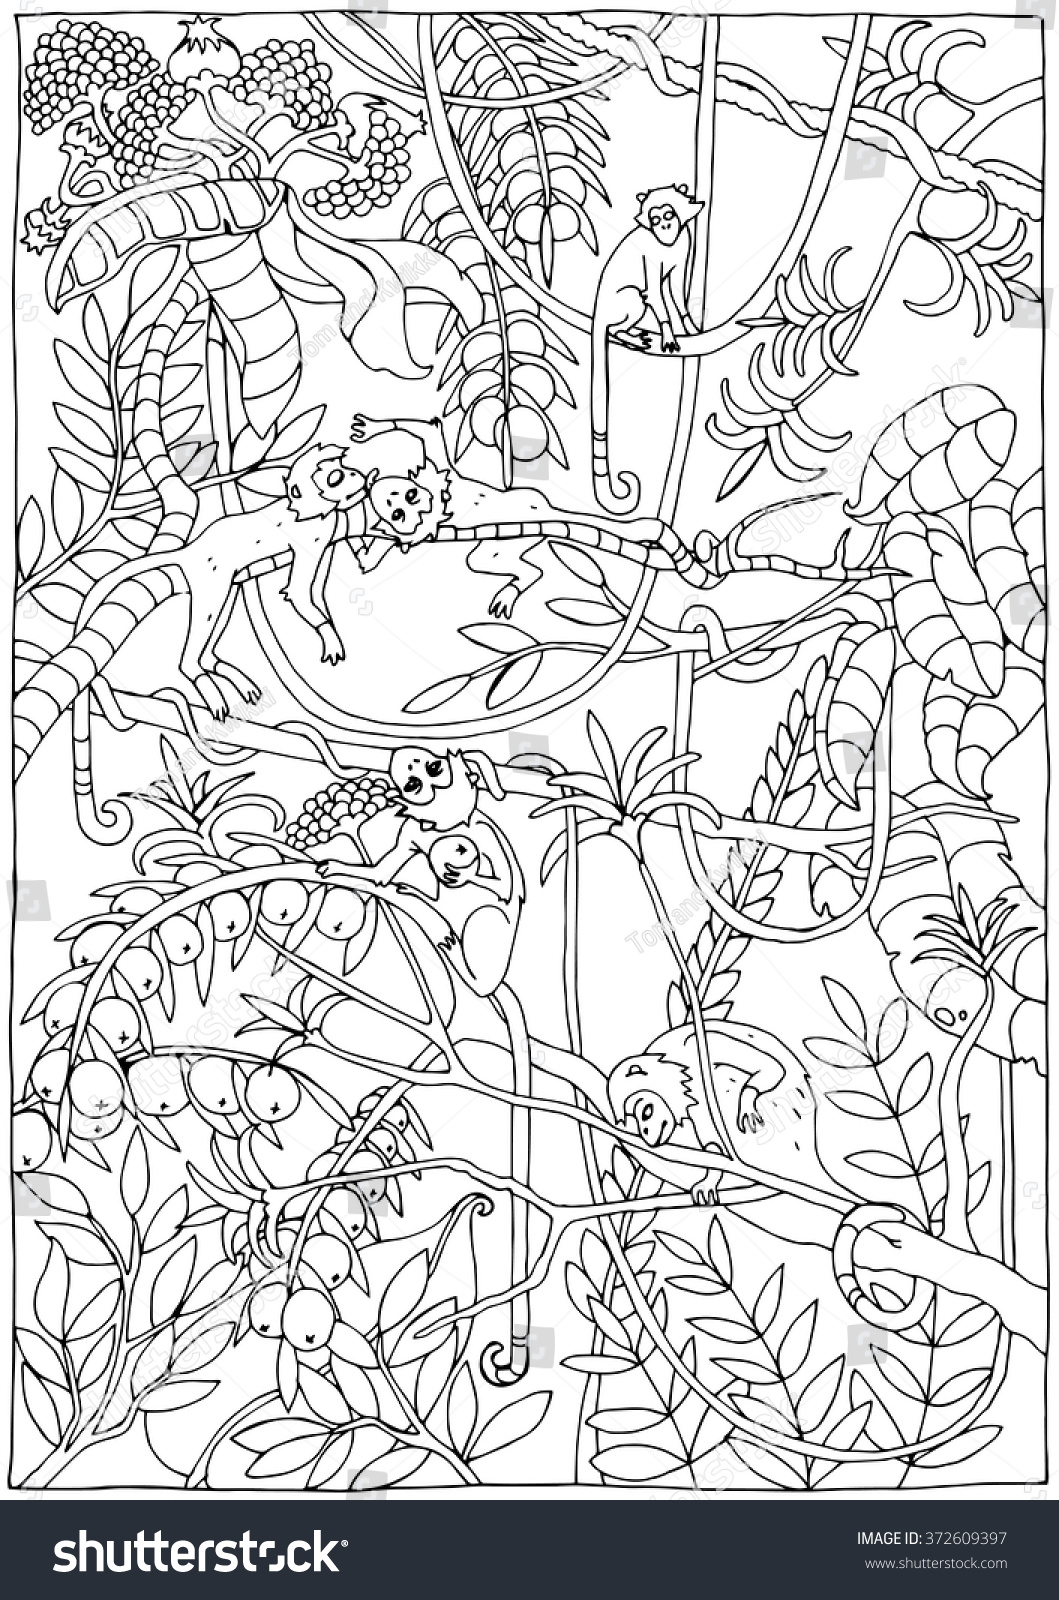 monkey jungle coloring page stock vector 372609397 shutterstock